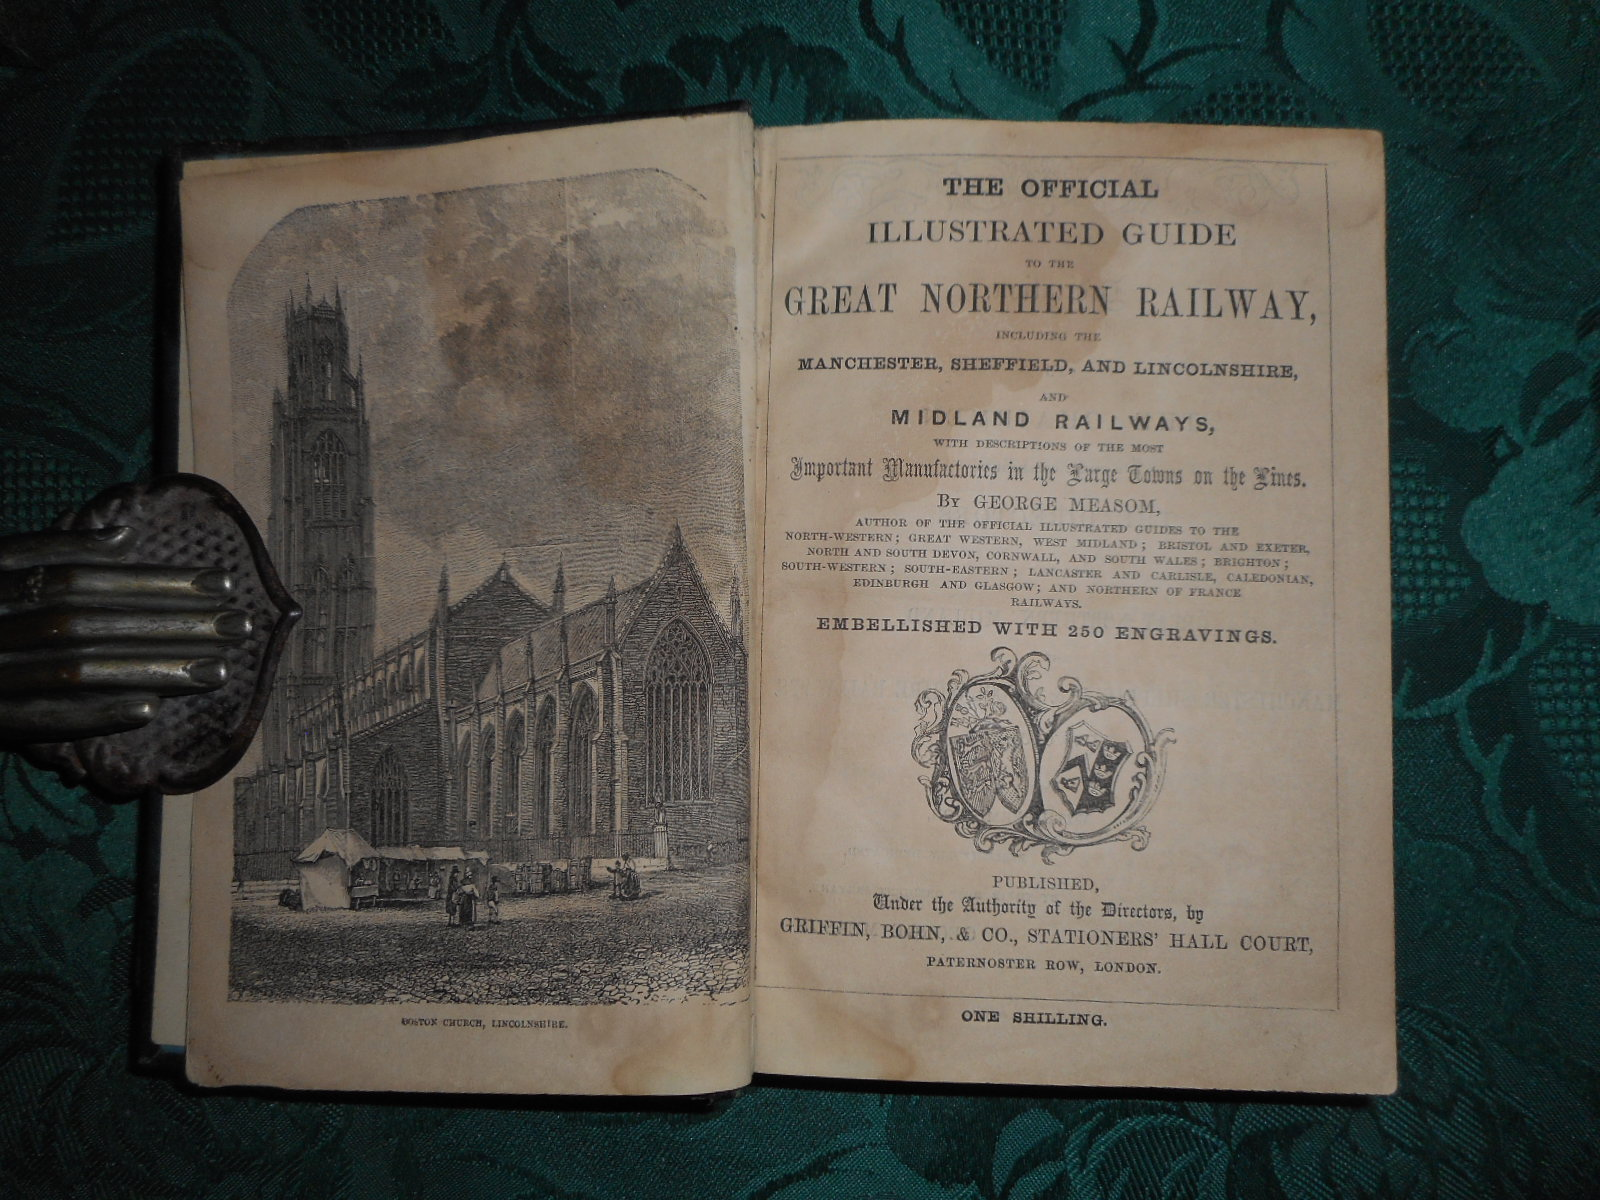 The Official Illustrated Guide to the Great Northern Railway Including the Manchester, Sheffield, and Lincolnshire, and Midland Railways With Descriptions of the Most Important Manufactories in the Large Towns on the Lines... Embellished with 250 Engravings